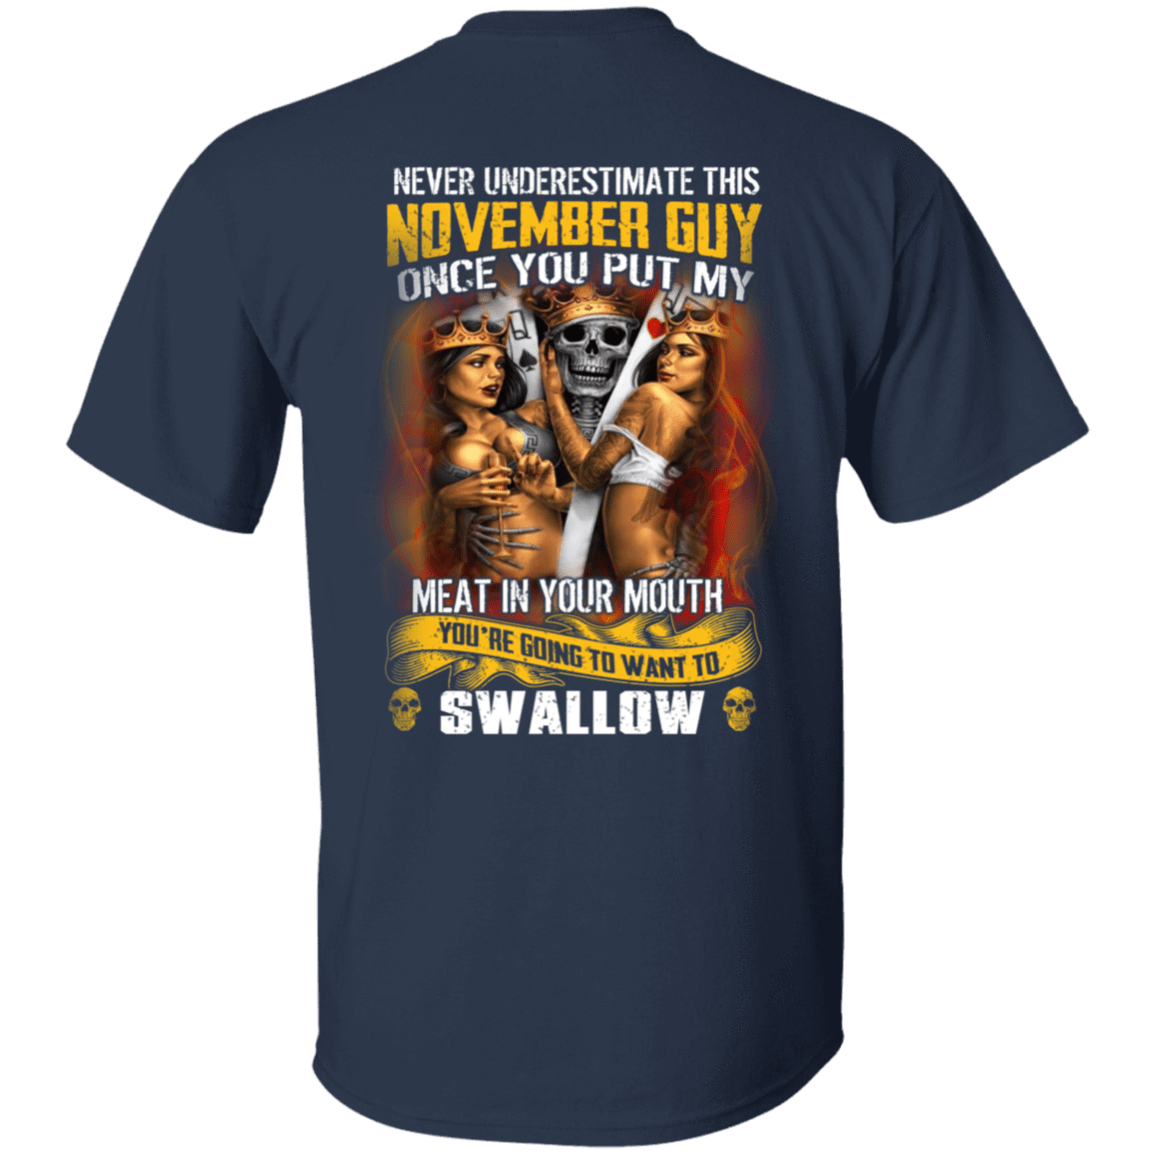 Never Underestimate This November Guy Once You Put My Meat In You Mouth T-Shirts, Hoodies, Tank 1049-9966-80692117-48248 - Tee Ript